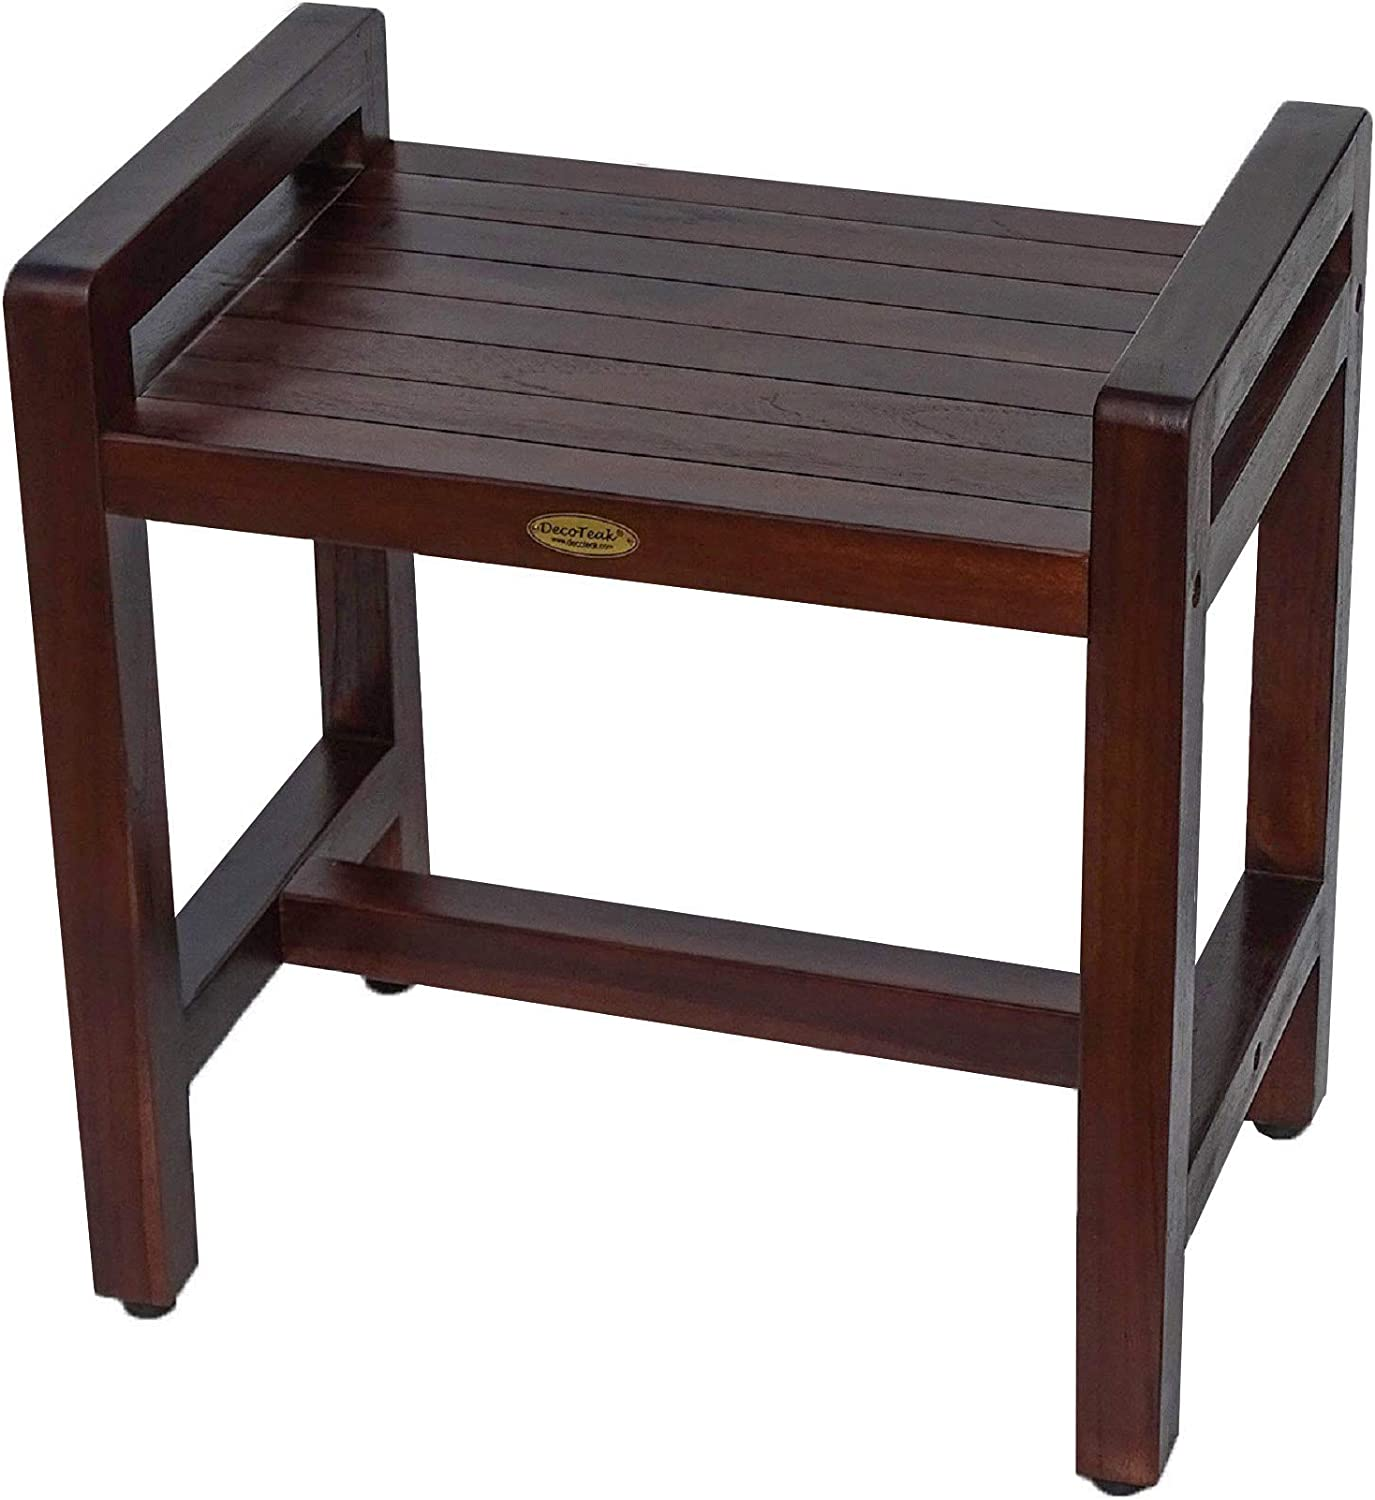 "Classic 18"" Teak Shower Bench with LIFTAIDE ARMS- Adustable Height Foot Pads- Home Health Medical Bench Features-Sitting, Shaving, Display, Storage 71xd8PVr7DLSL1500_"